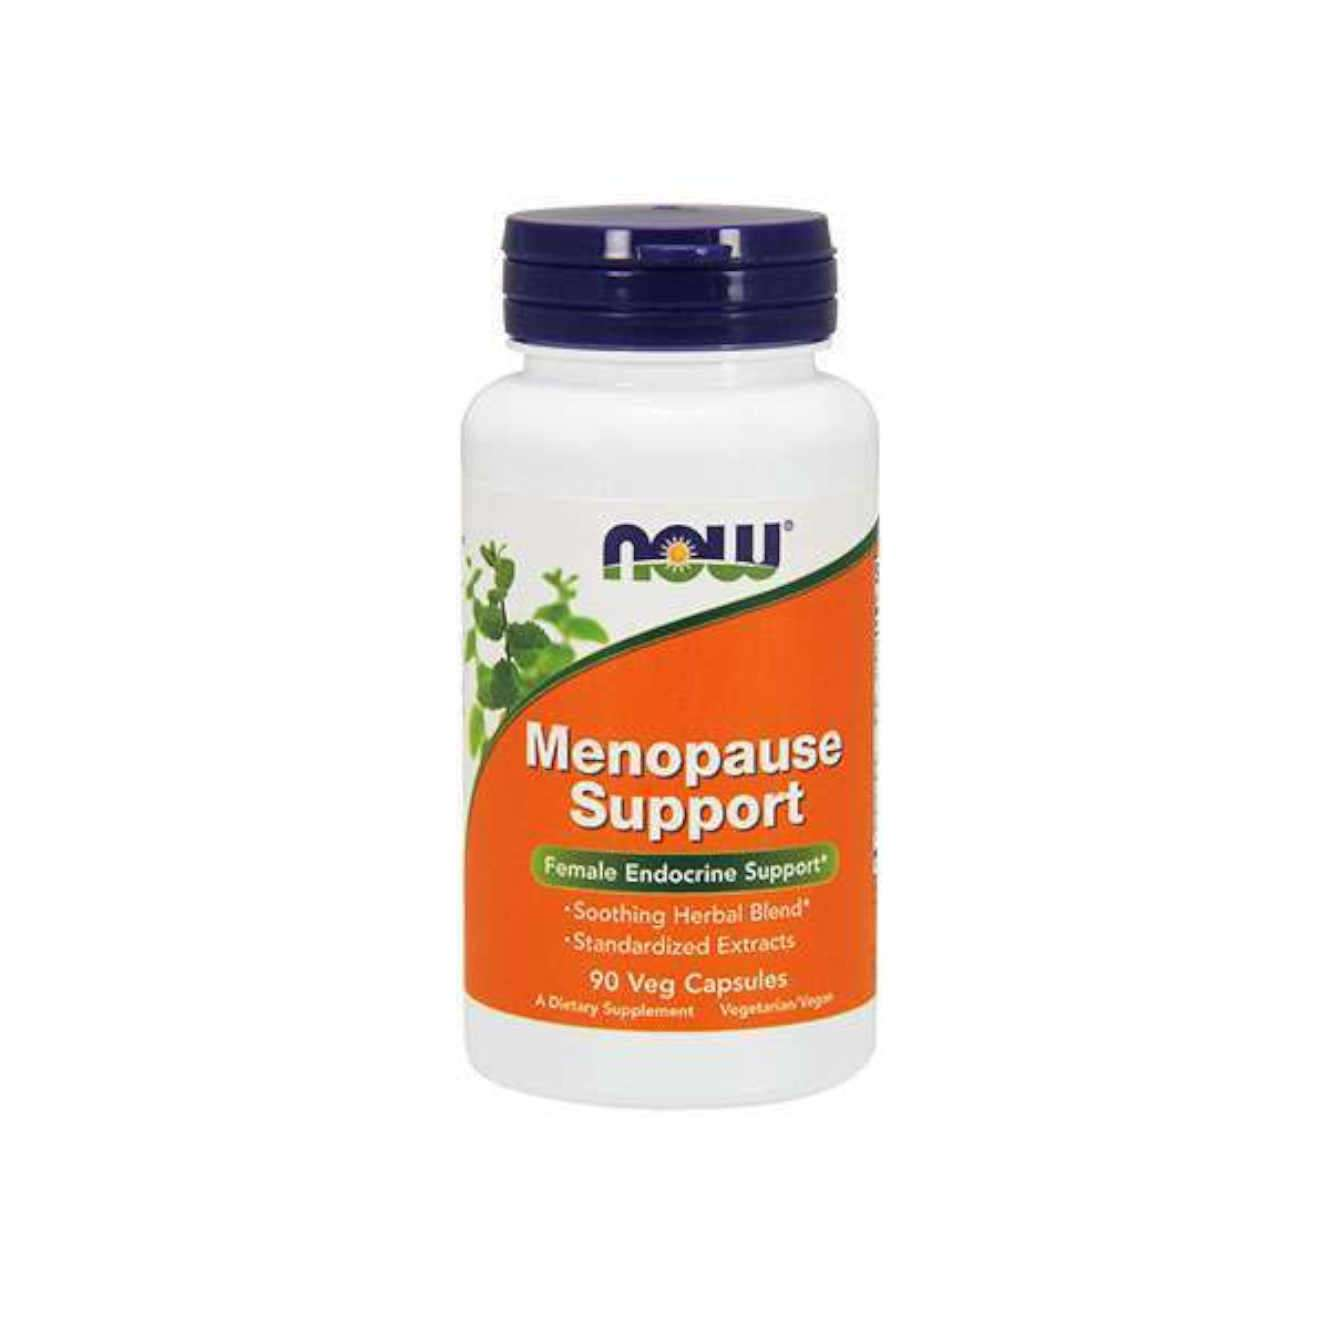 MENOPAUSE SUPPORT - 90 veg caps